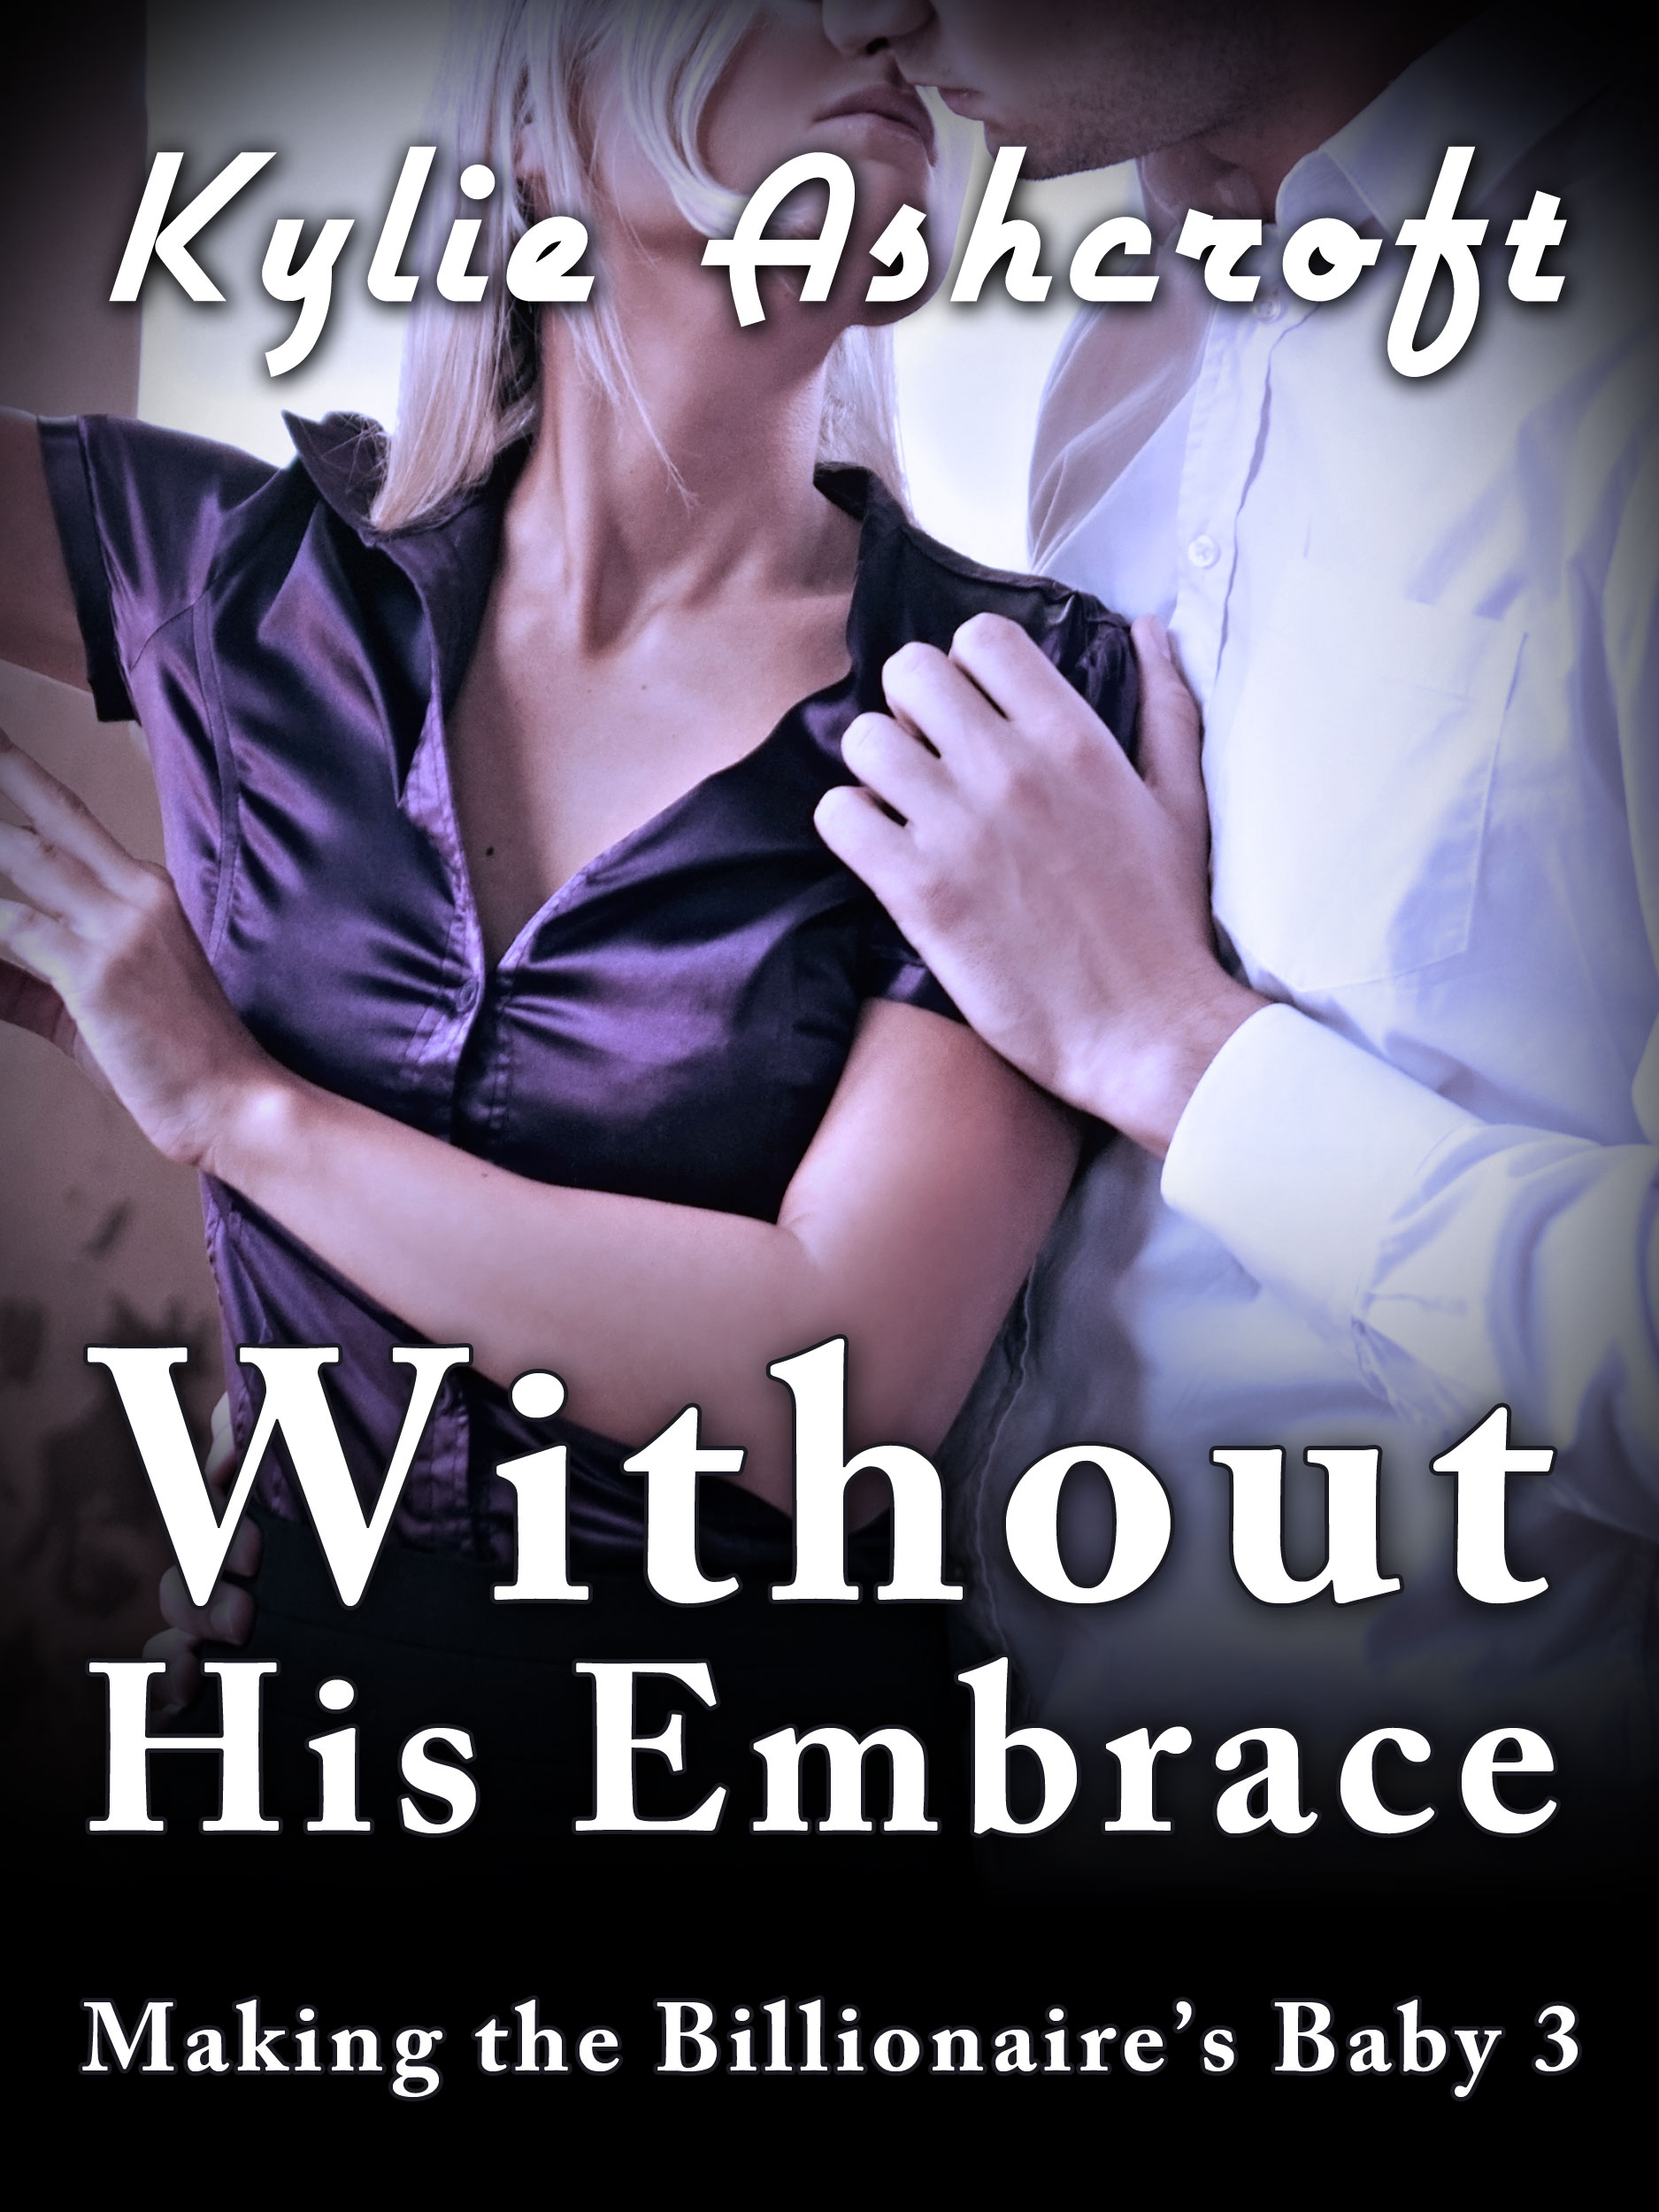 More Books by Kylie Ashcroft